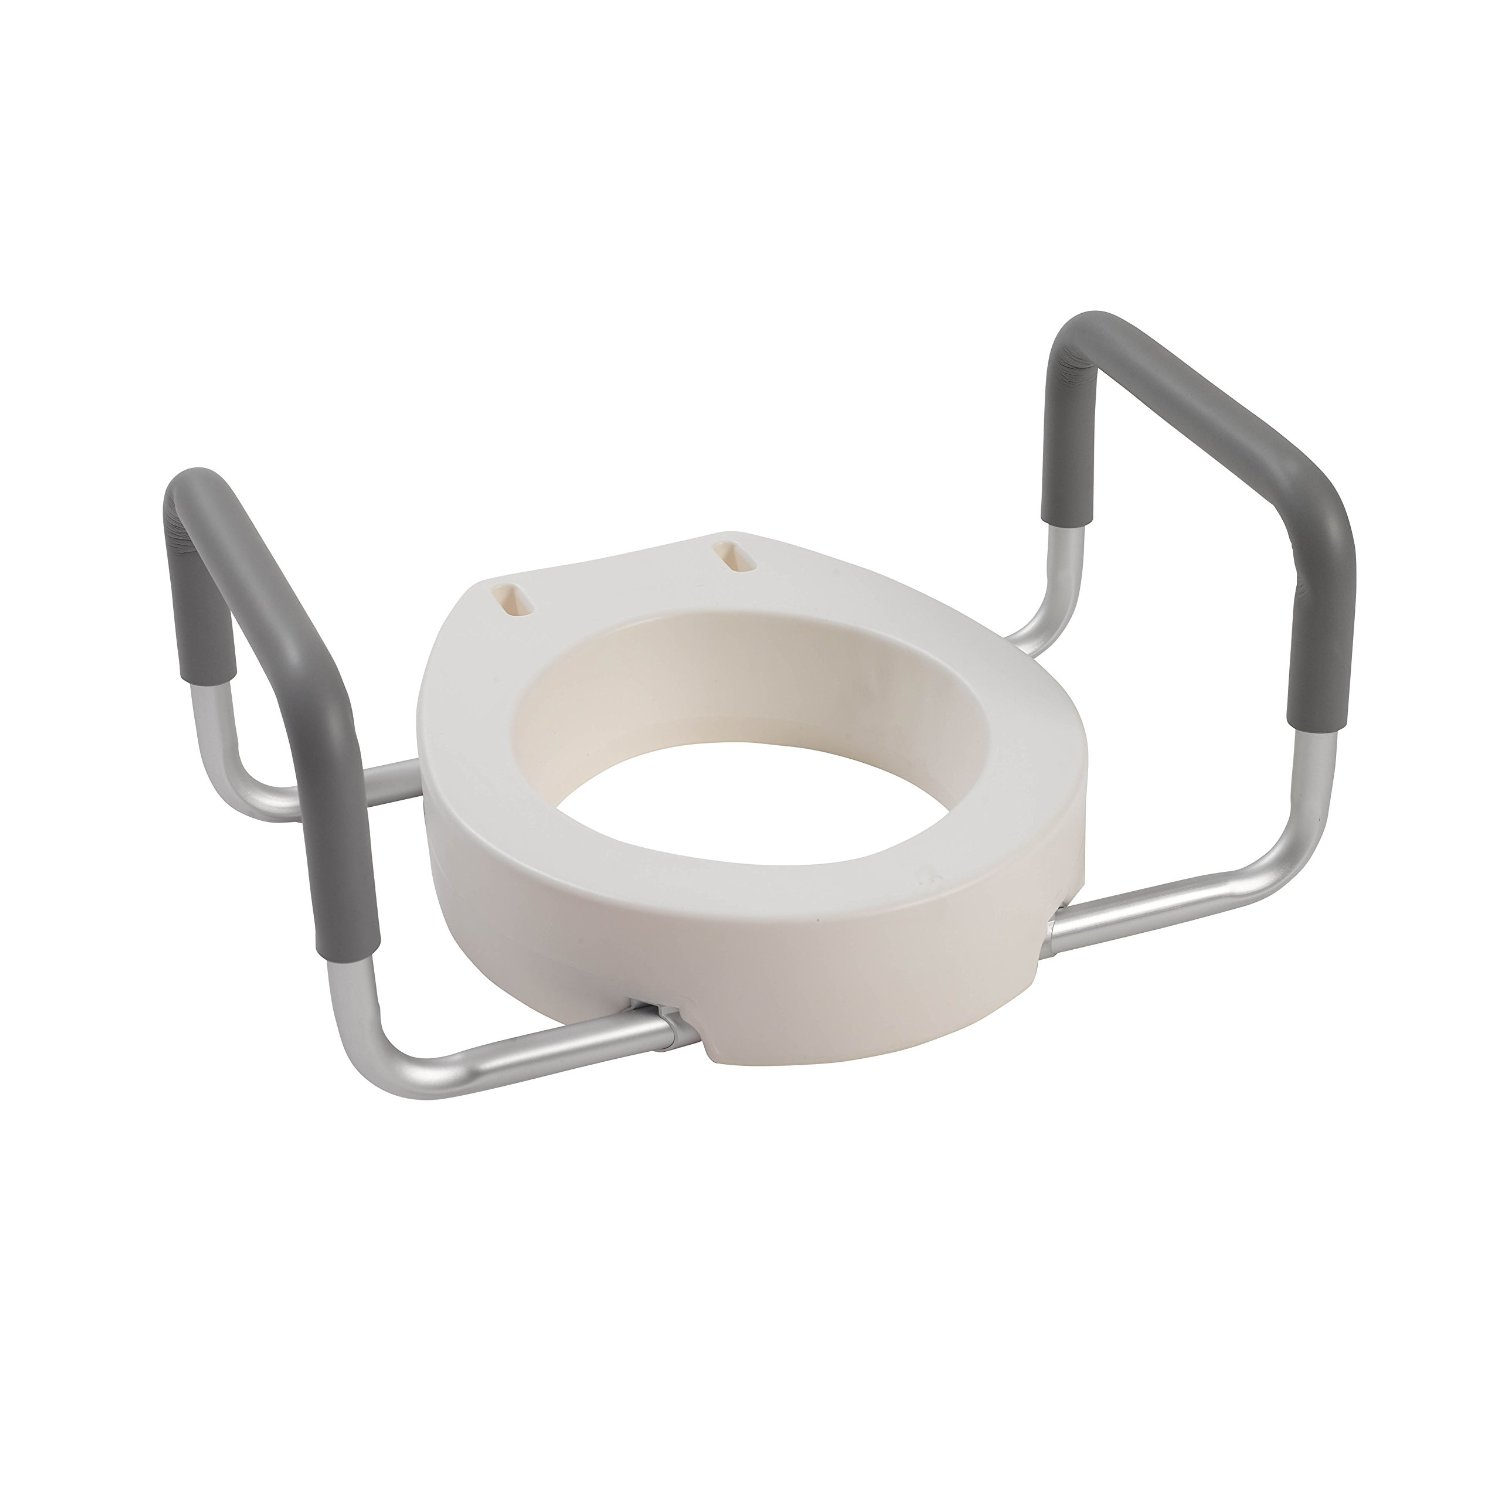 Raised High Toilet Seats For Elderly Amp Disabled Folks